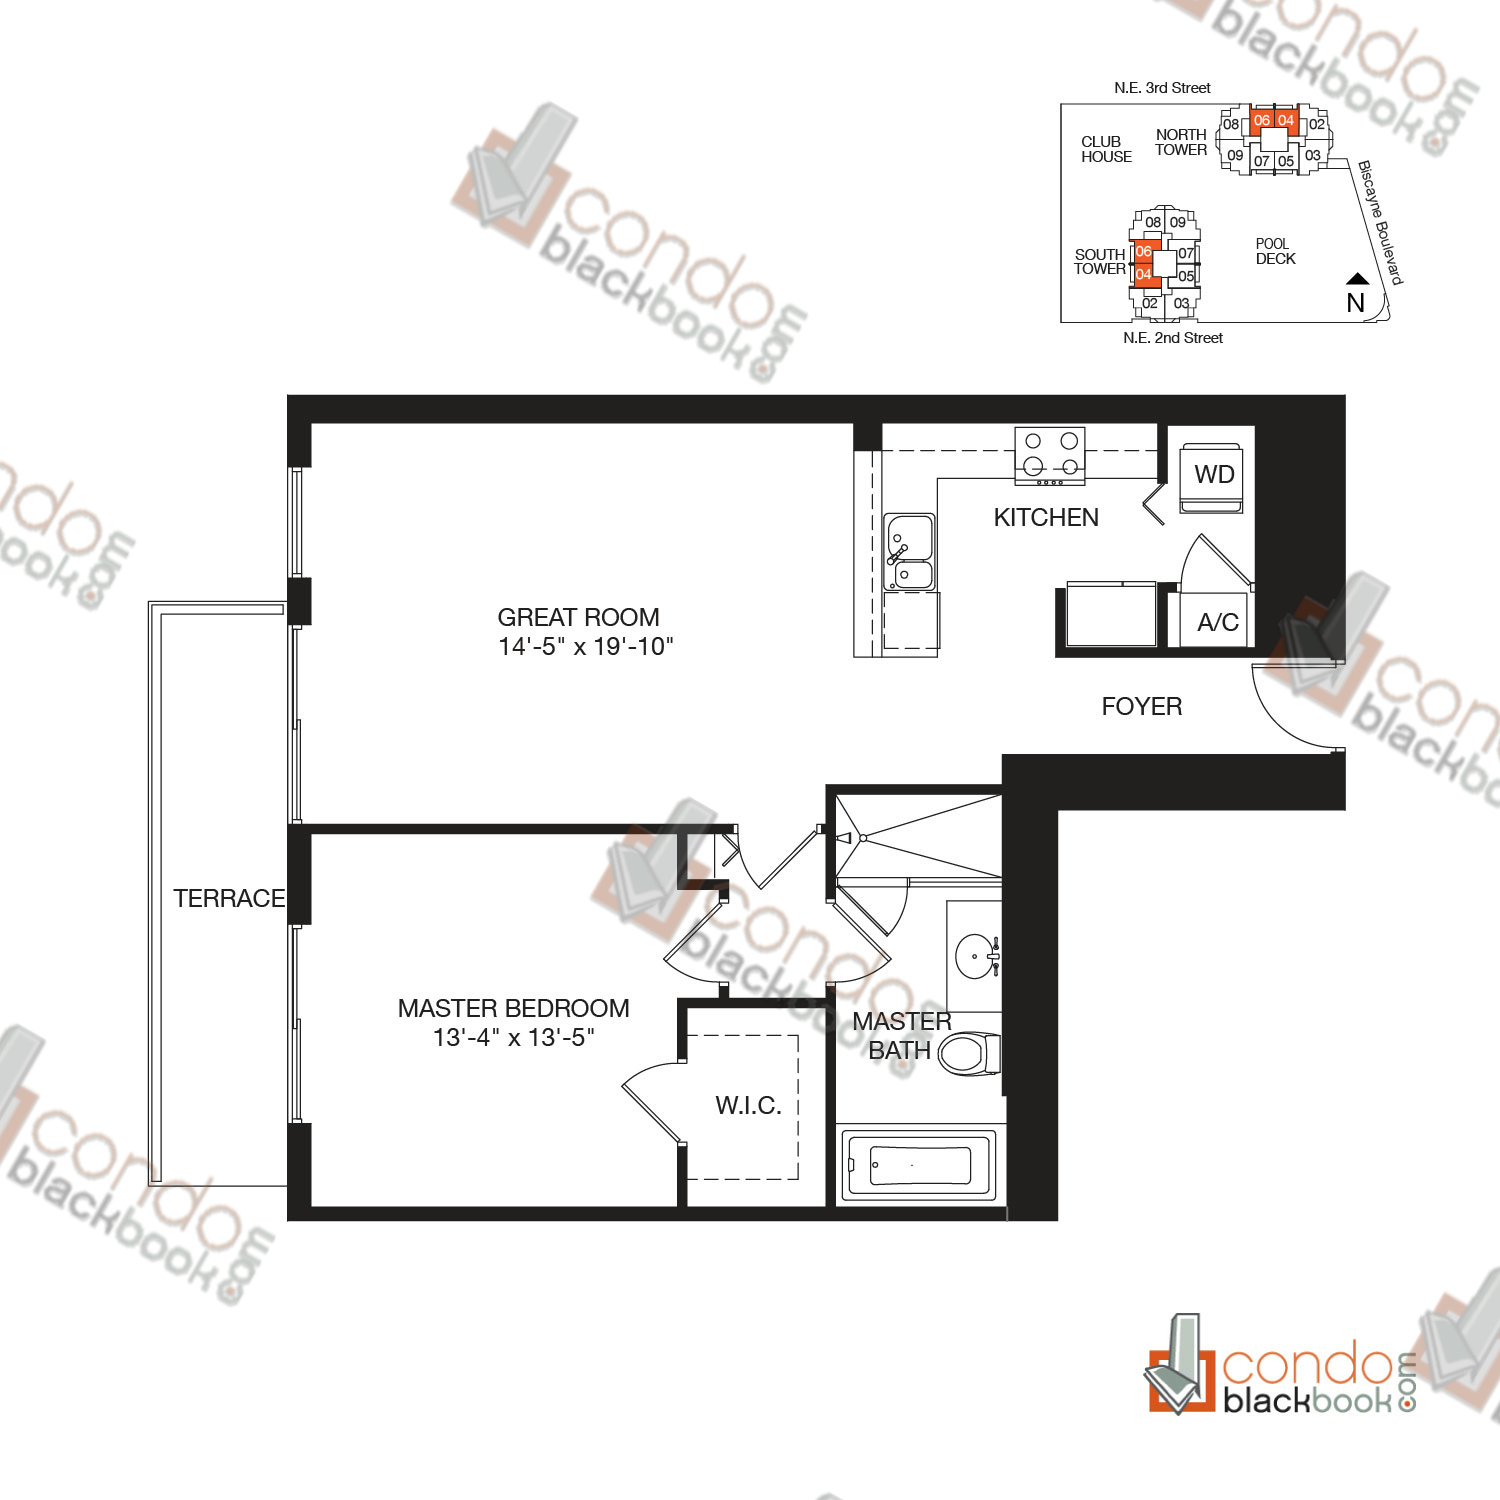 Floor plan for Vizcayne Downtown Miami Miami, model RESIDENCE 4, line 04, 05, 06, 07, 1/1 bedrooms, 881 sq ft